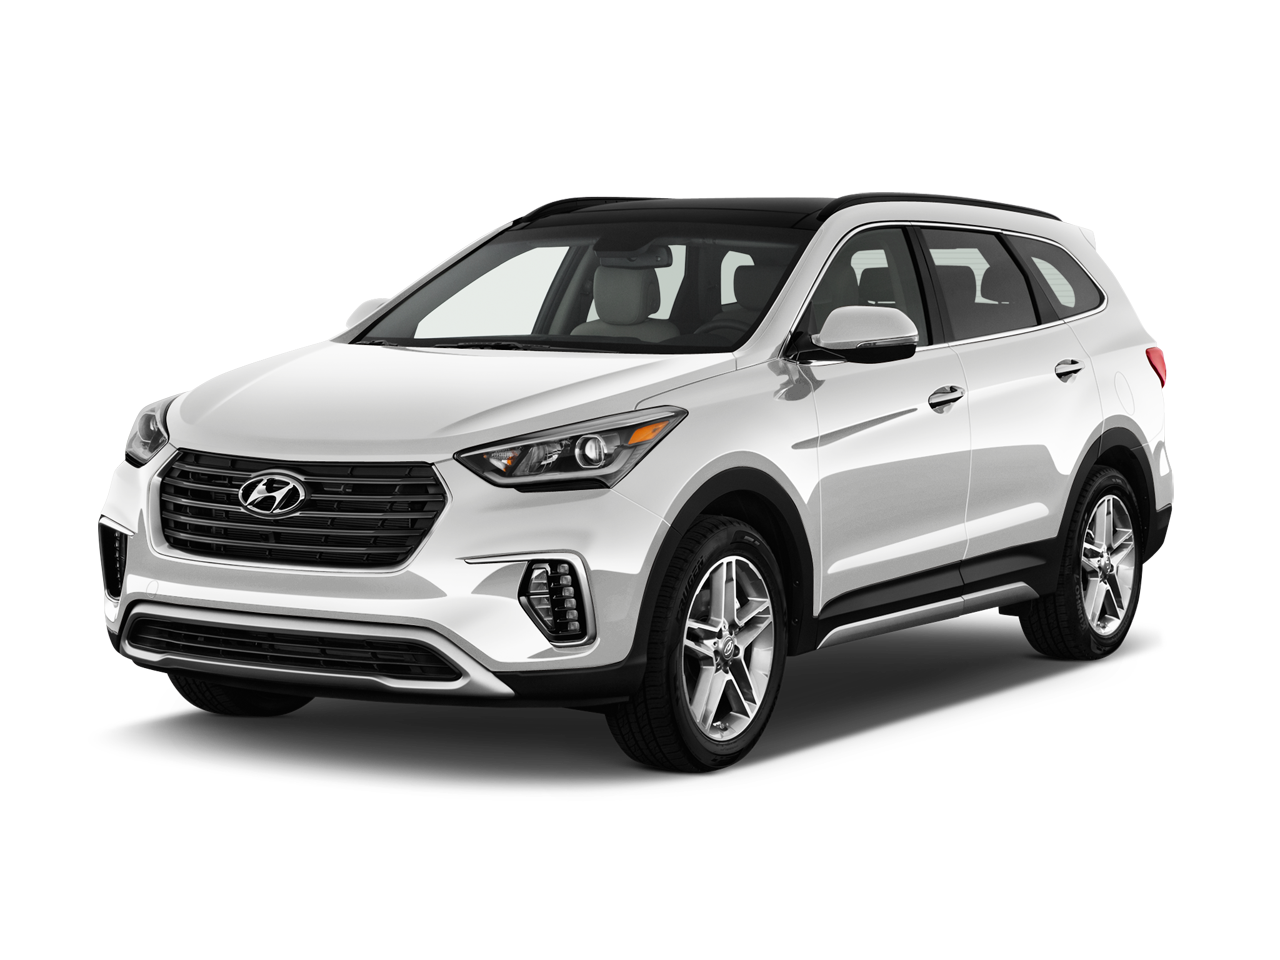 new 2017 hyundai santa fe limited ultimate near long beach ca harbor hyundai. Black Bedroom Furniture Sets. Home Design Ideas